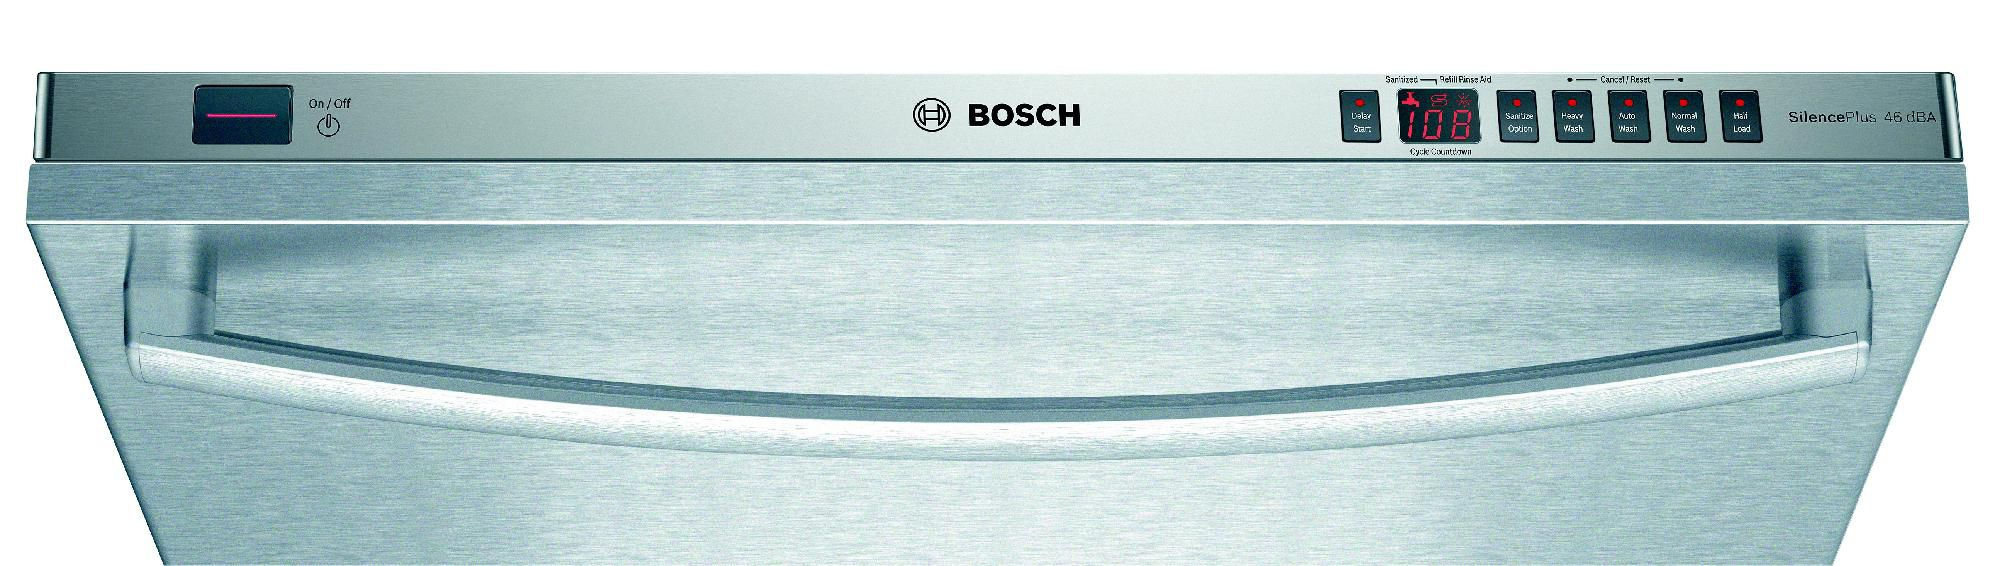 "Bosch 24"" Built-In Dishwasher Stainless Steel"